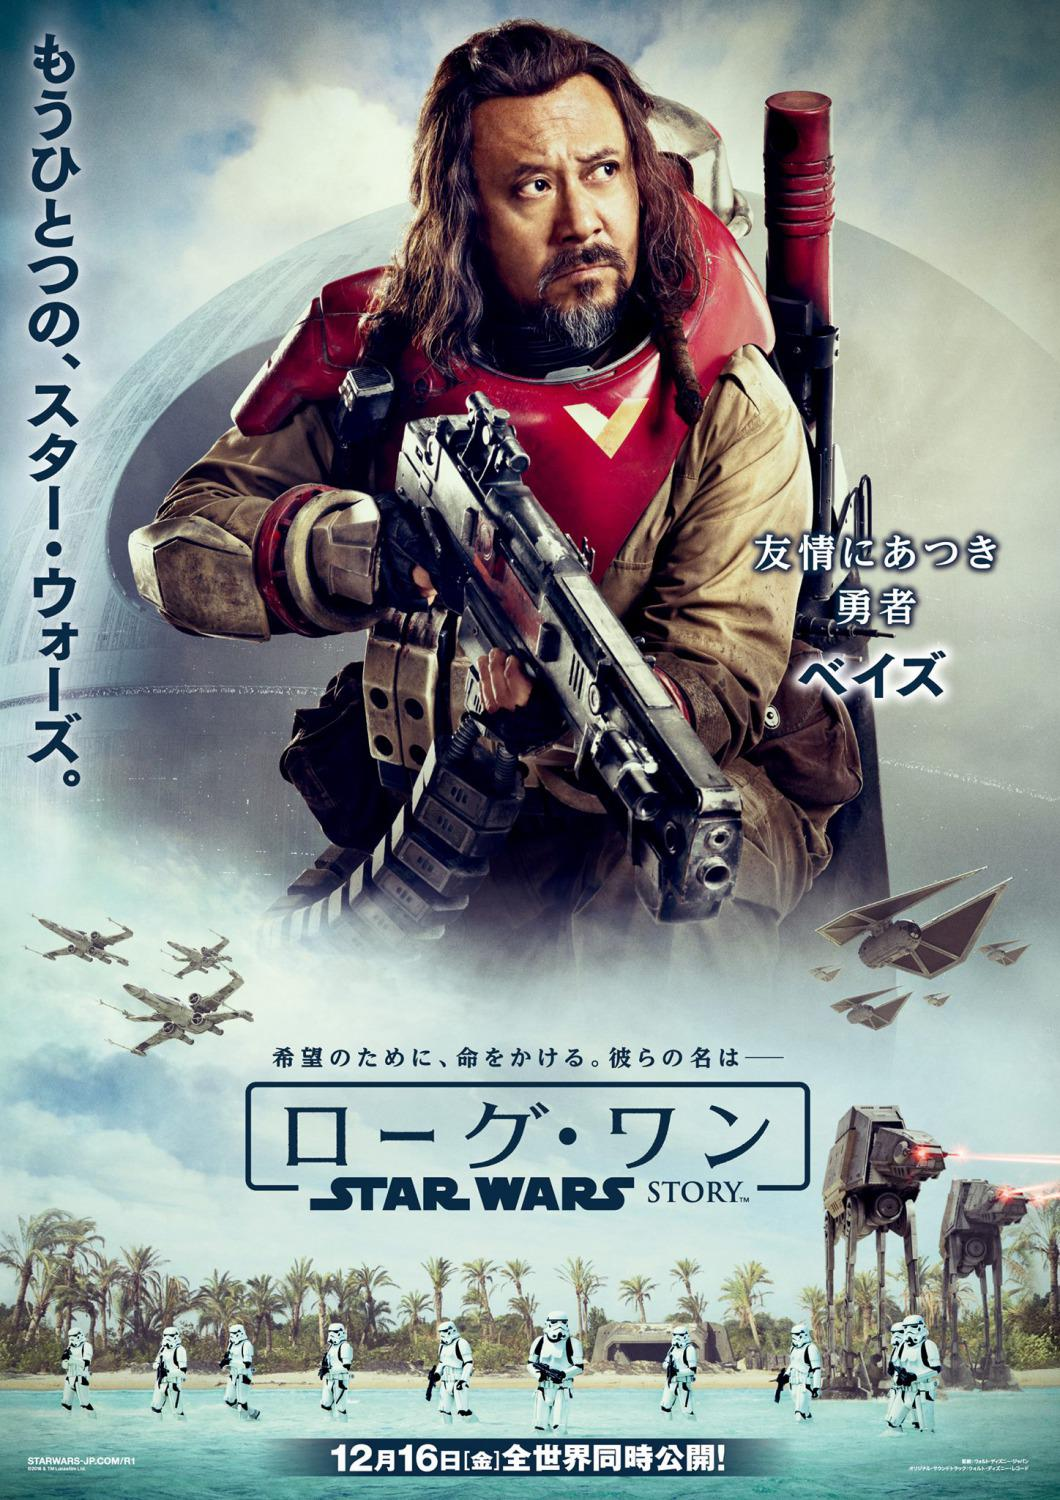 Star Wars - Rogue One a Star Wars story - Jiang Wen - Baze Malbus